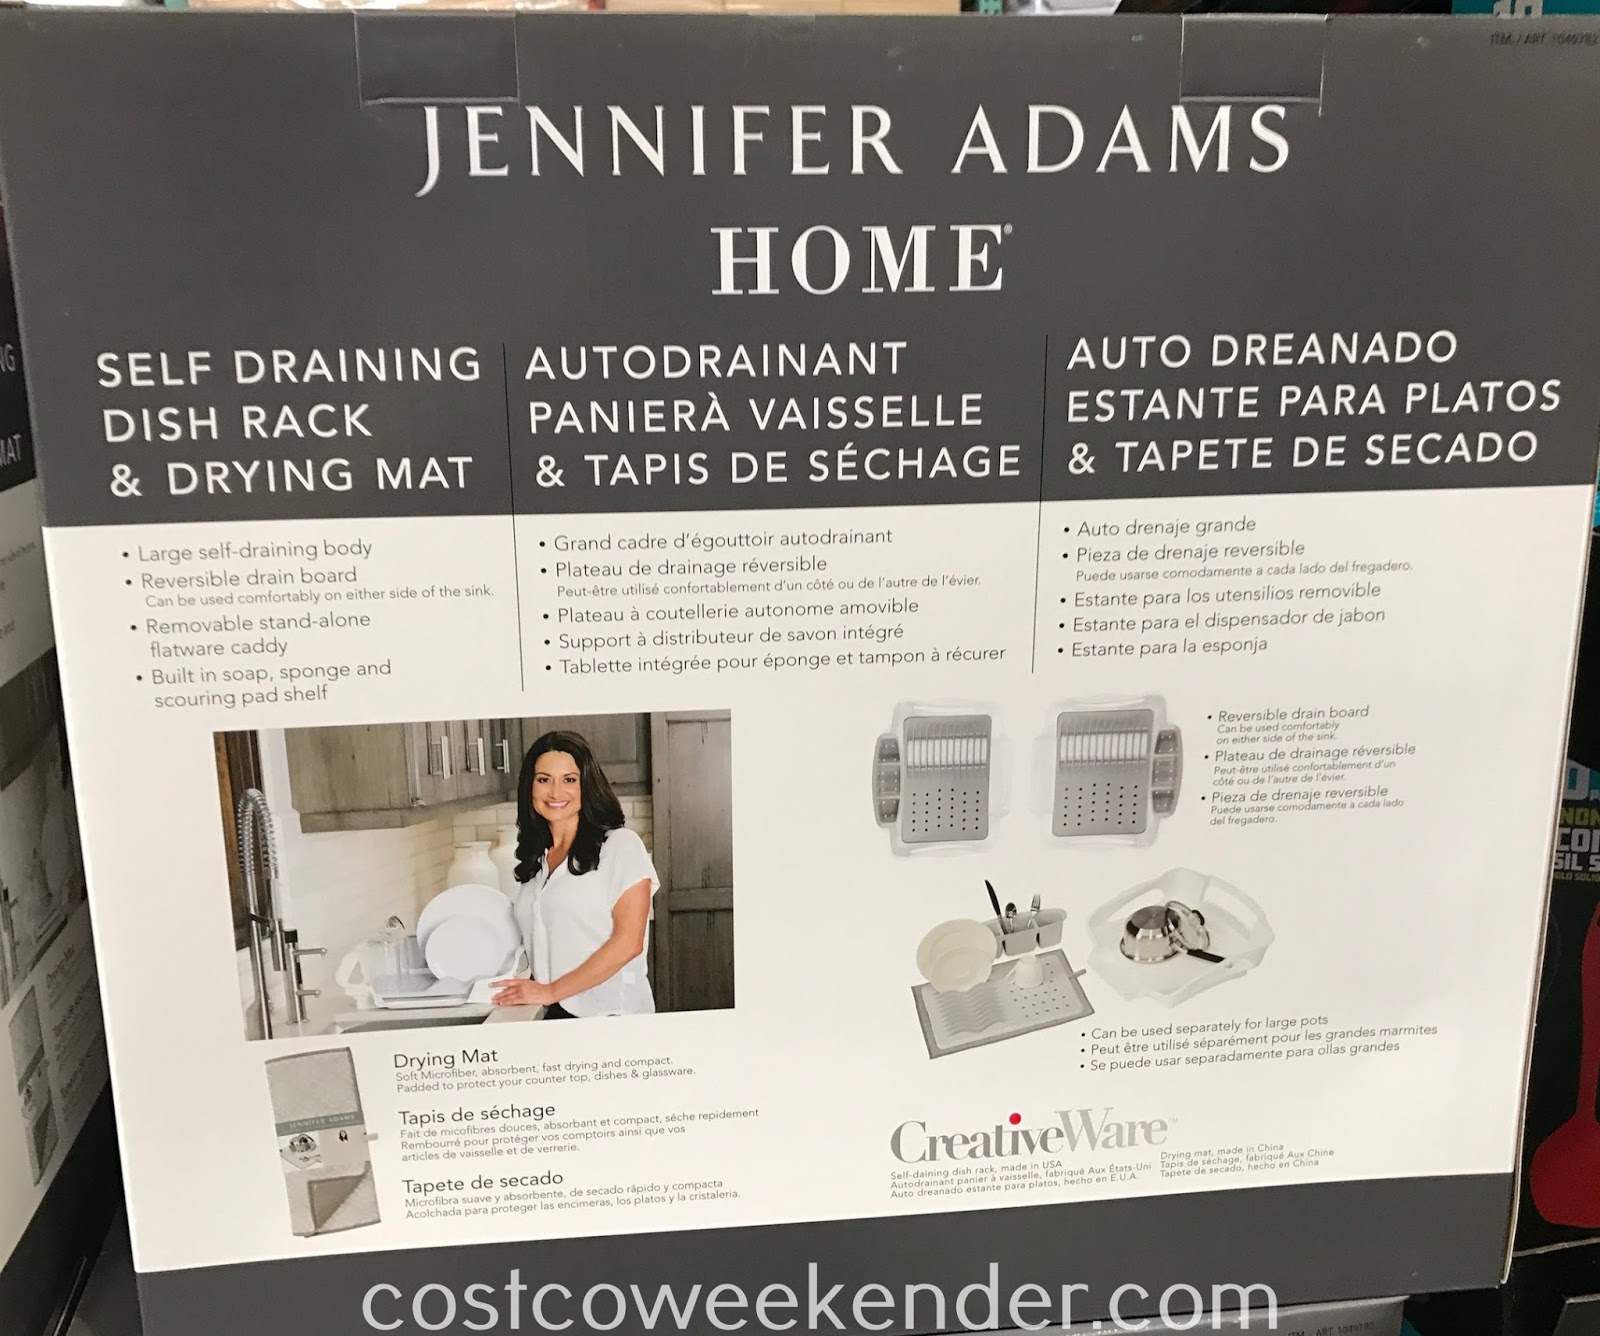 Costco 1049782 - Jennifer Adams Home Self Draining Dish Rack & Drying Mat: great for any kitchen